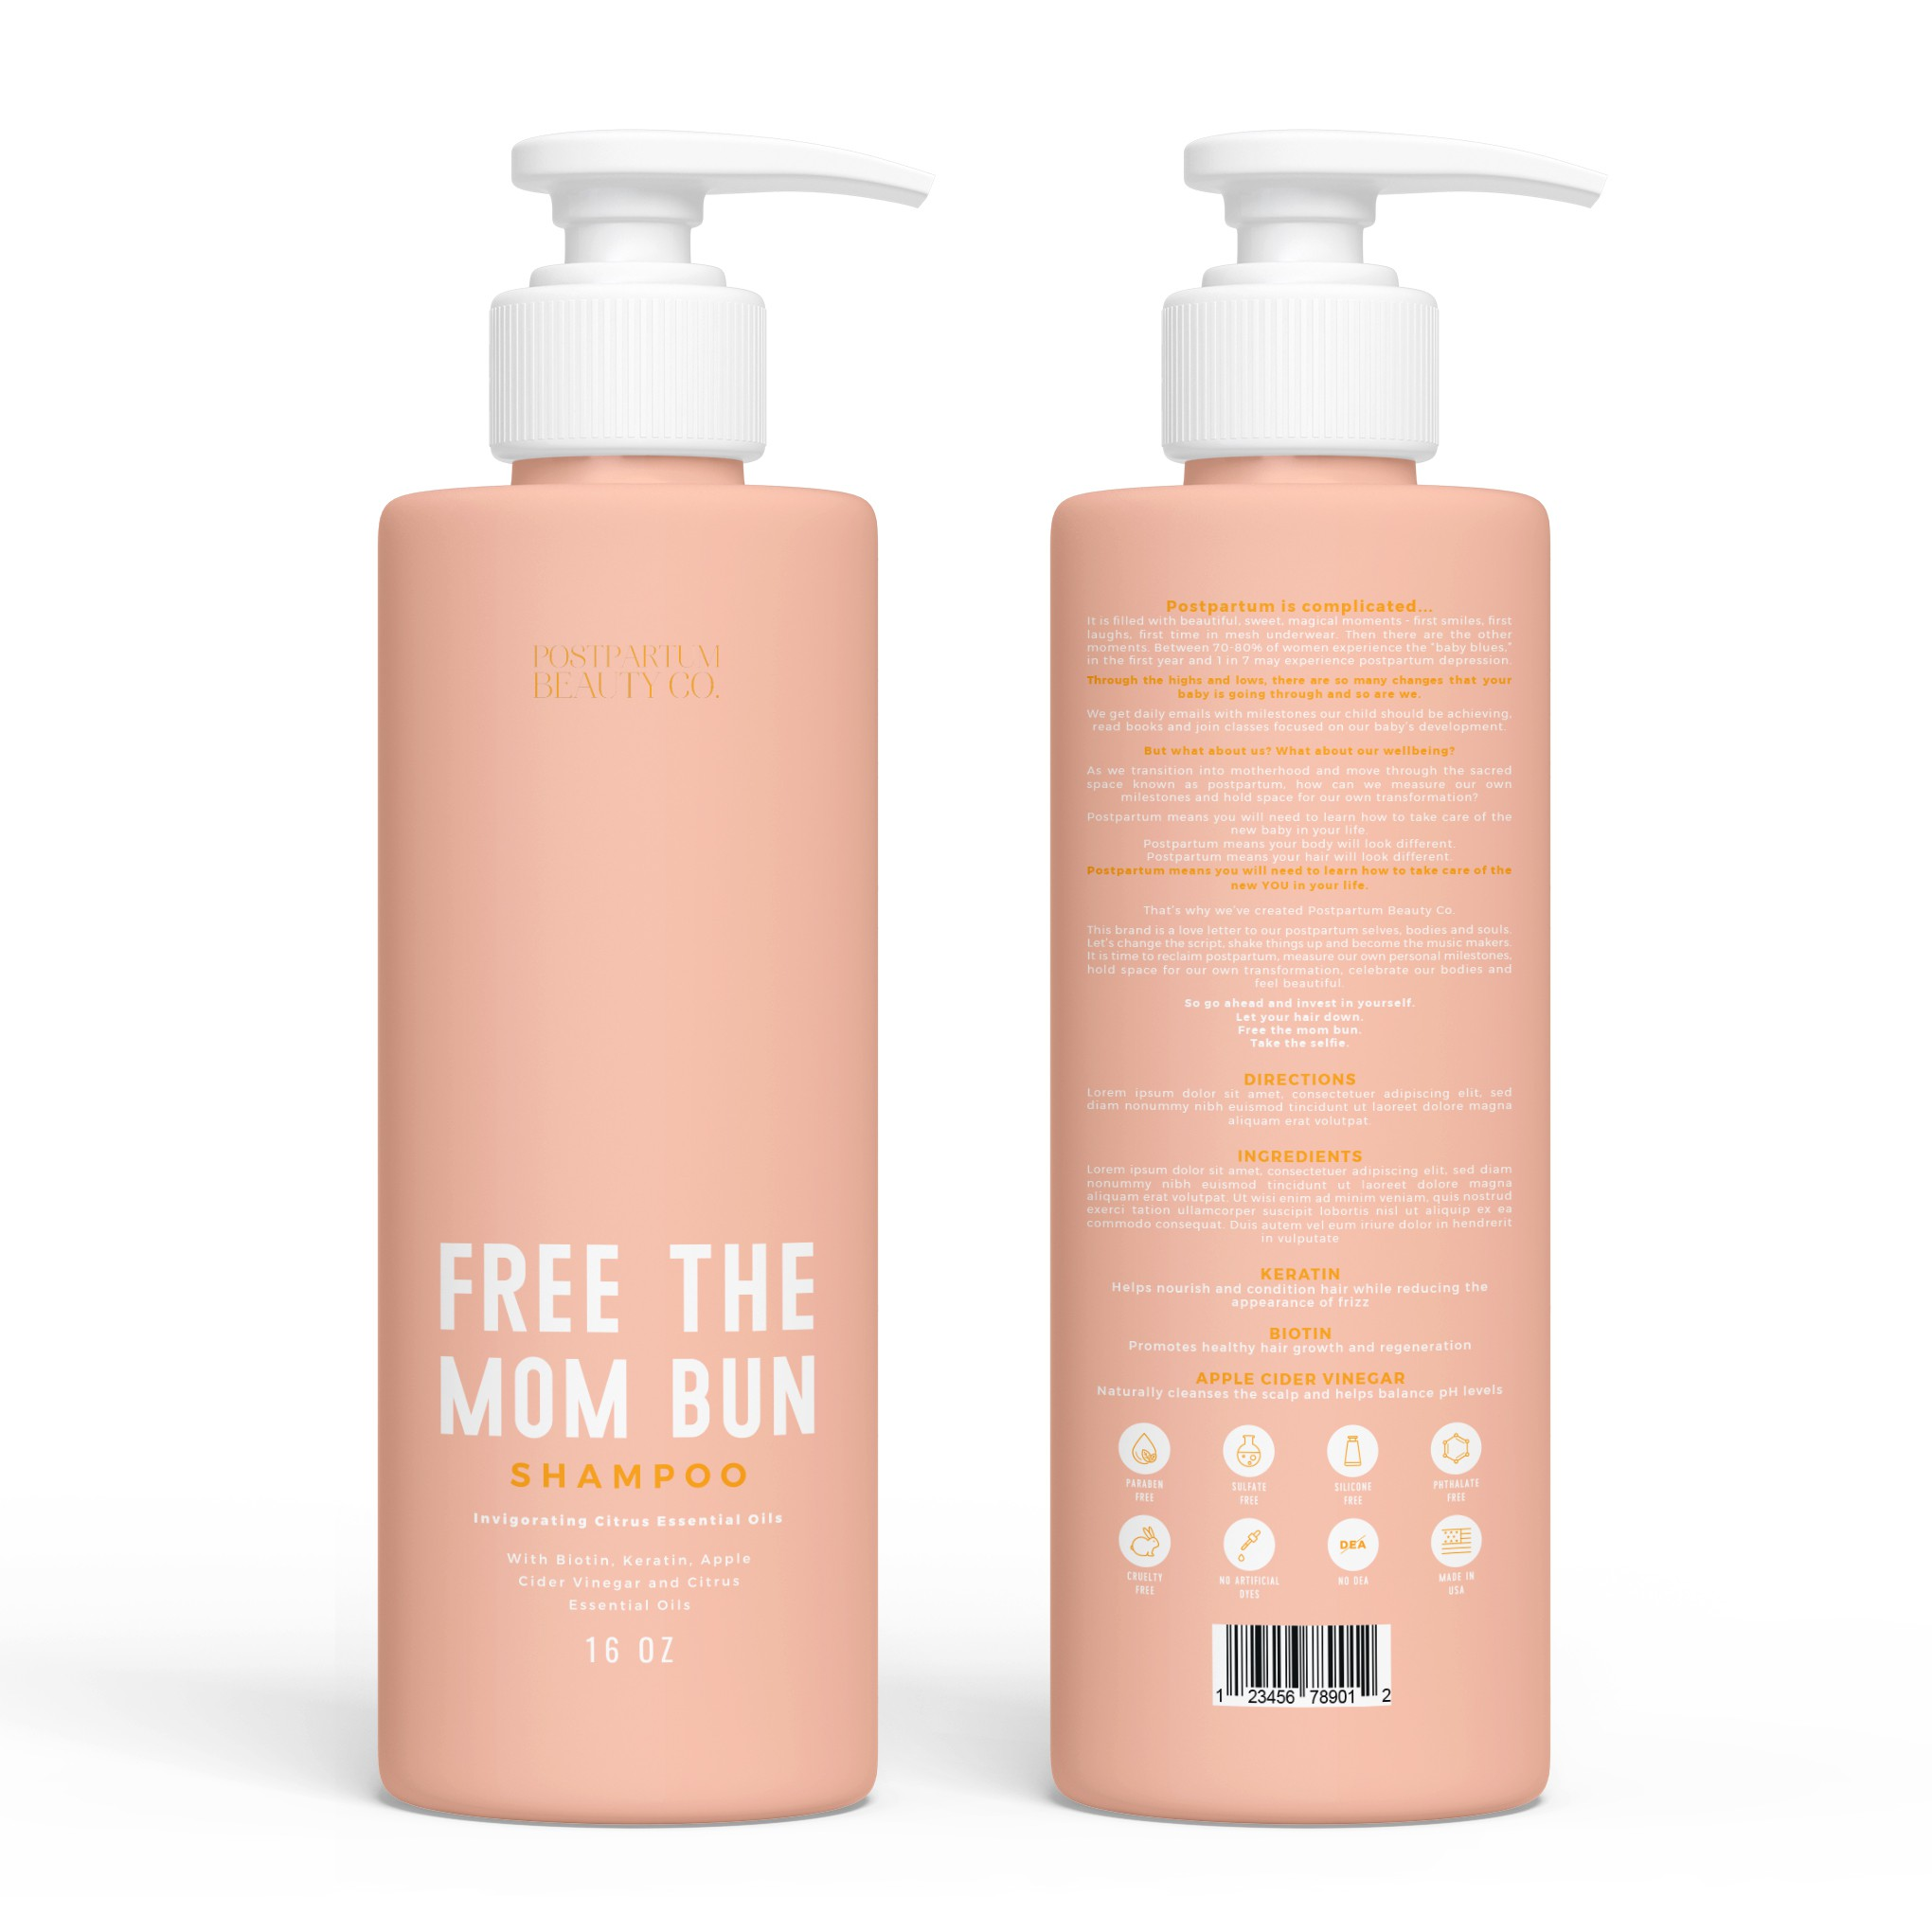 Shampoo and Conditioner Bottle for High End Brand